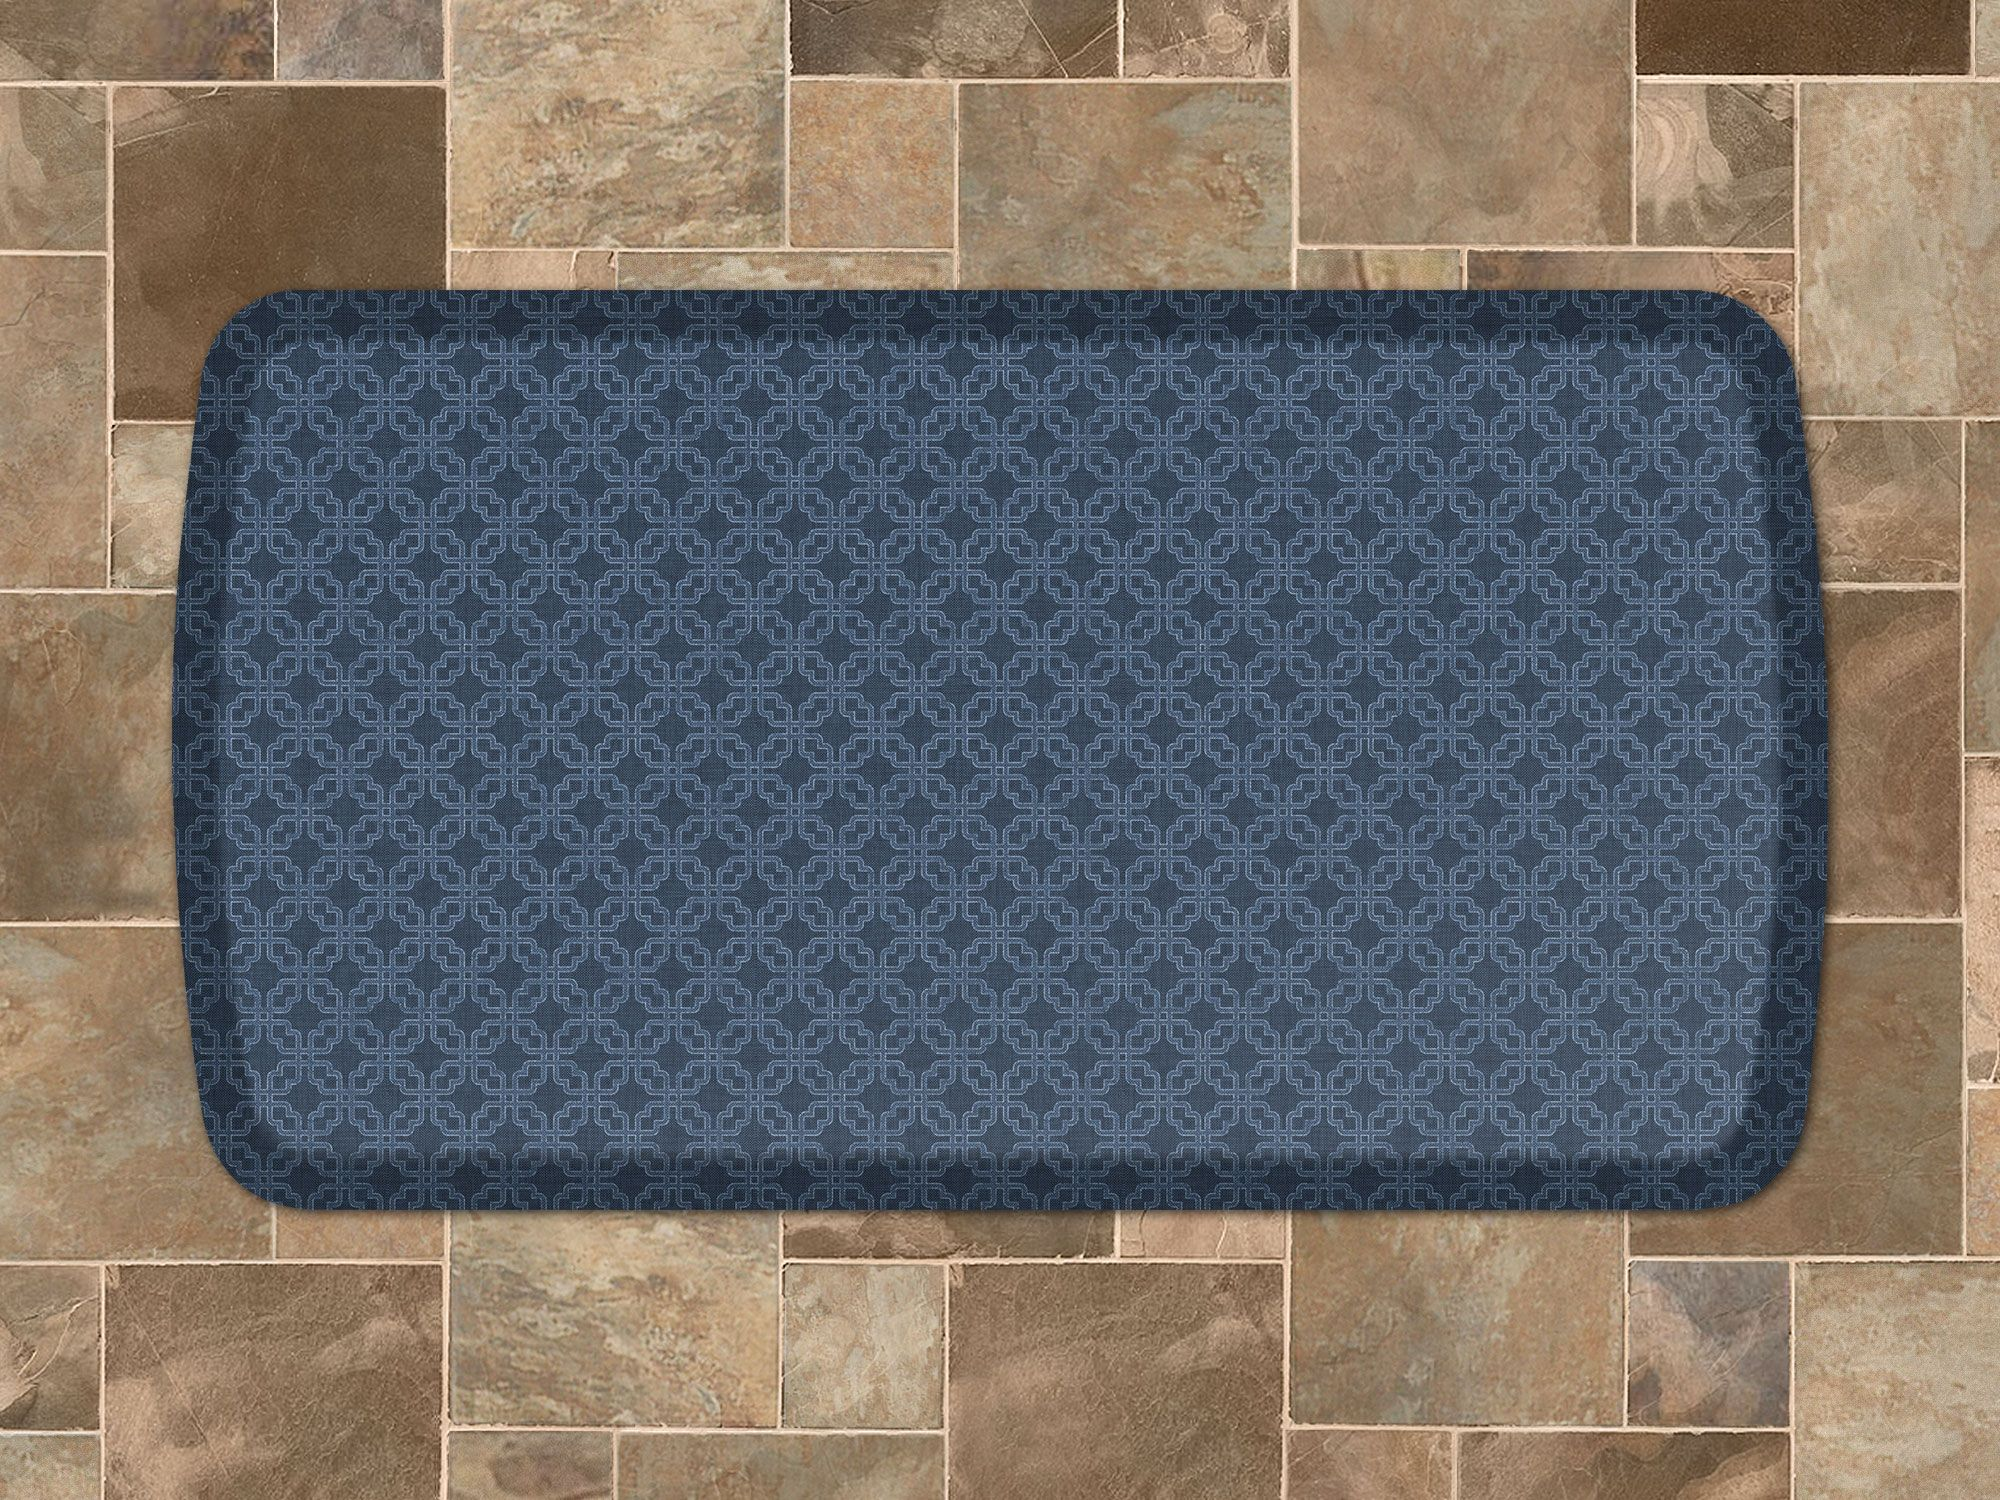 Pin By Ellen Wesley Guadagnino On Ideas For The House Decor Mats Square Lattice